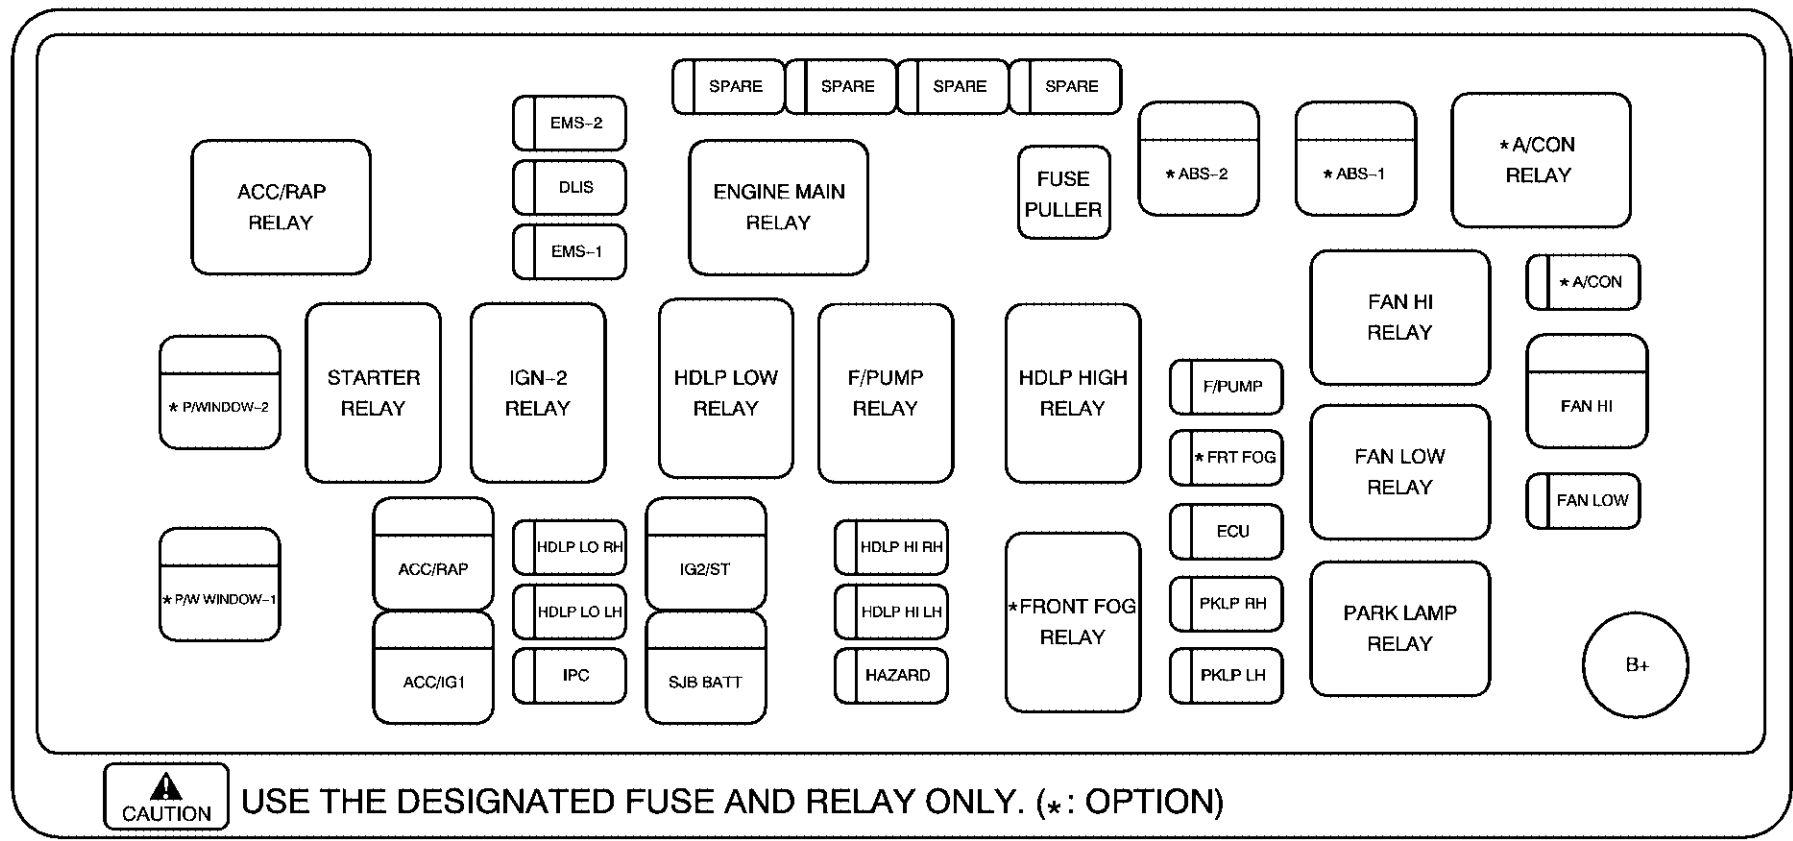 2009 chevy aveo fuse diagram wiring diagram used 2009 chevy aveo fuse box location 2004 chevy [ 1793 x 841 Pixel ]